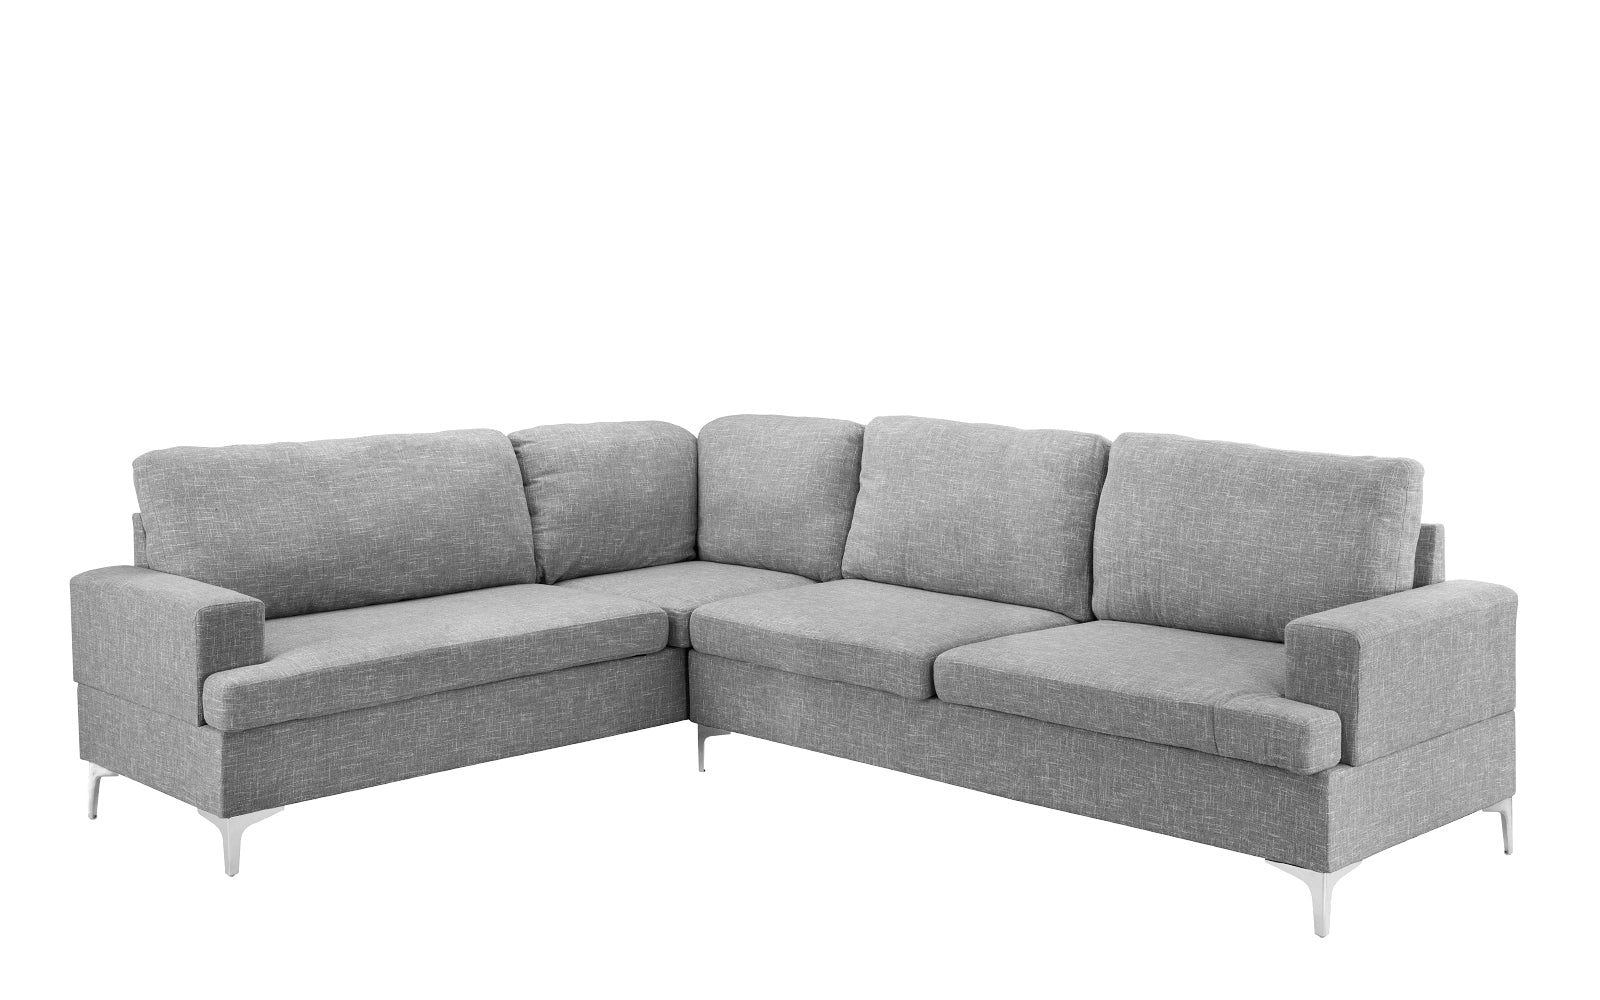 Large Sectional Sofa Image